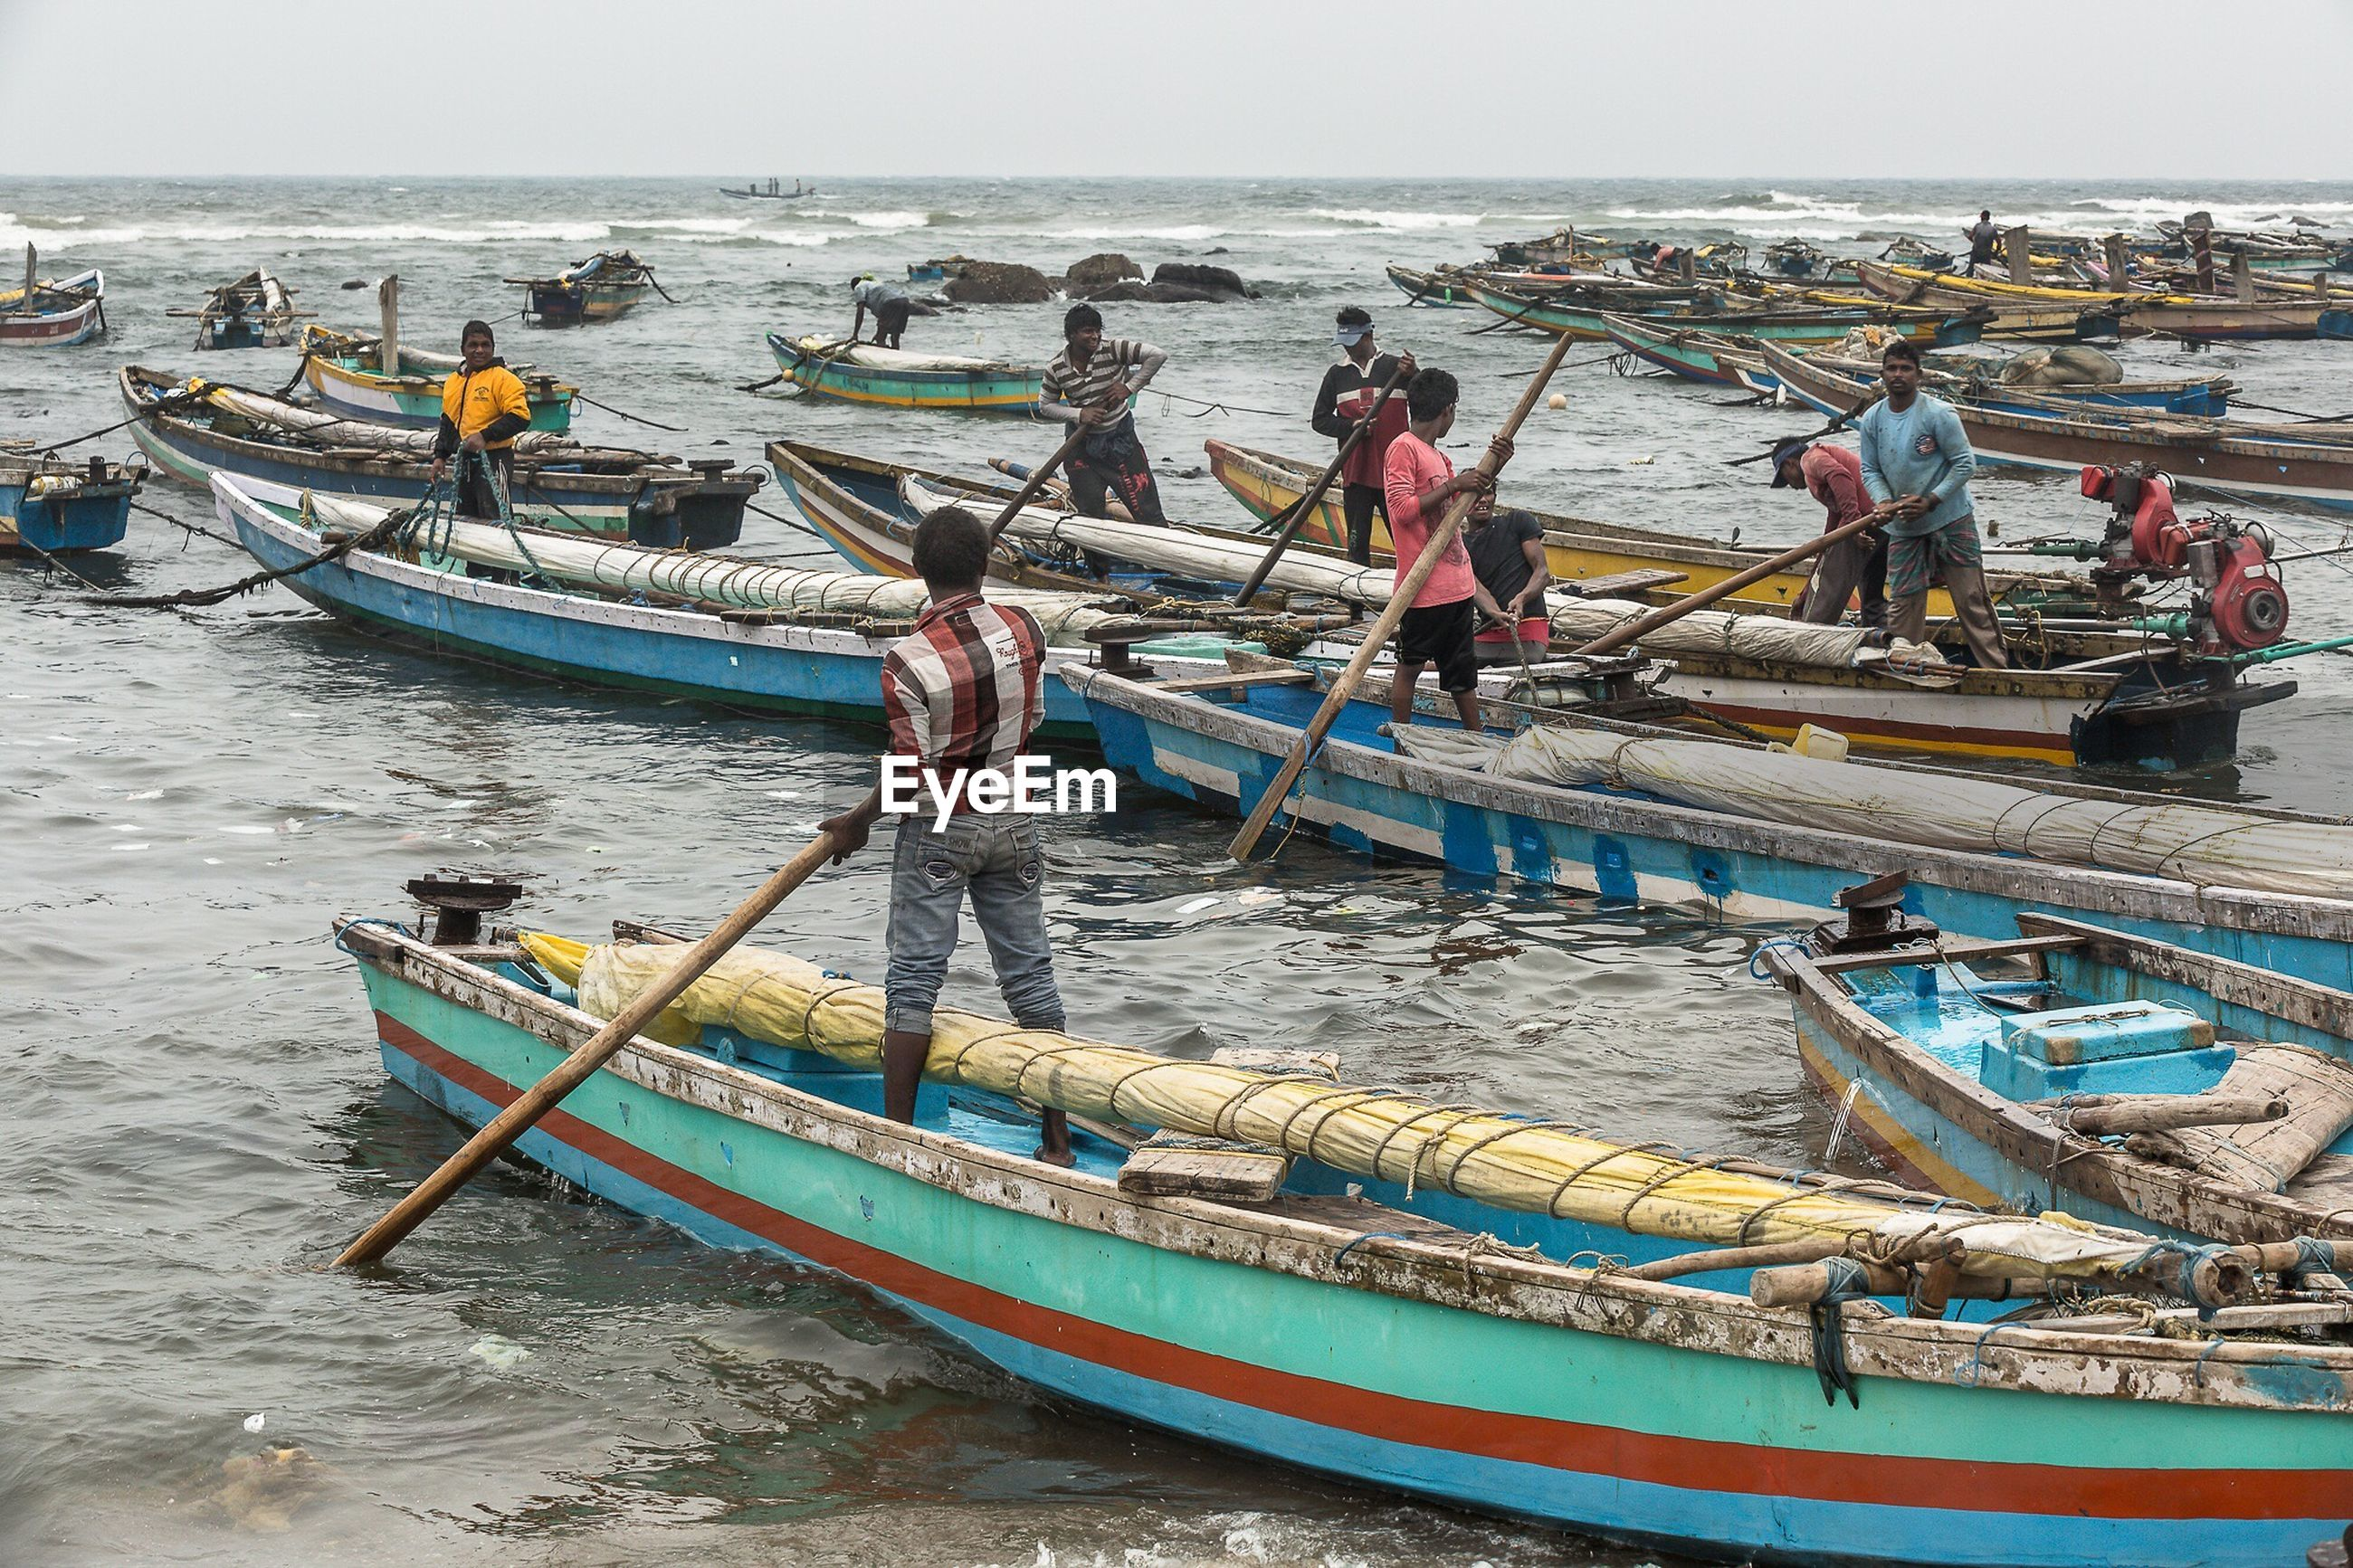 View of fisherman in boats against clear sky